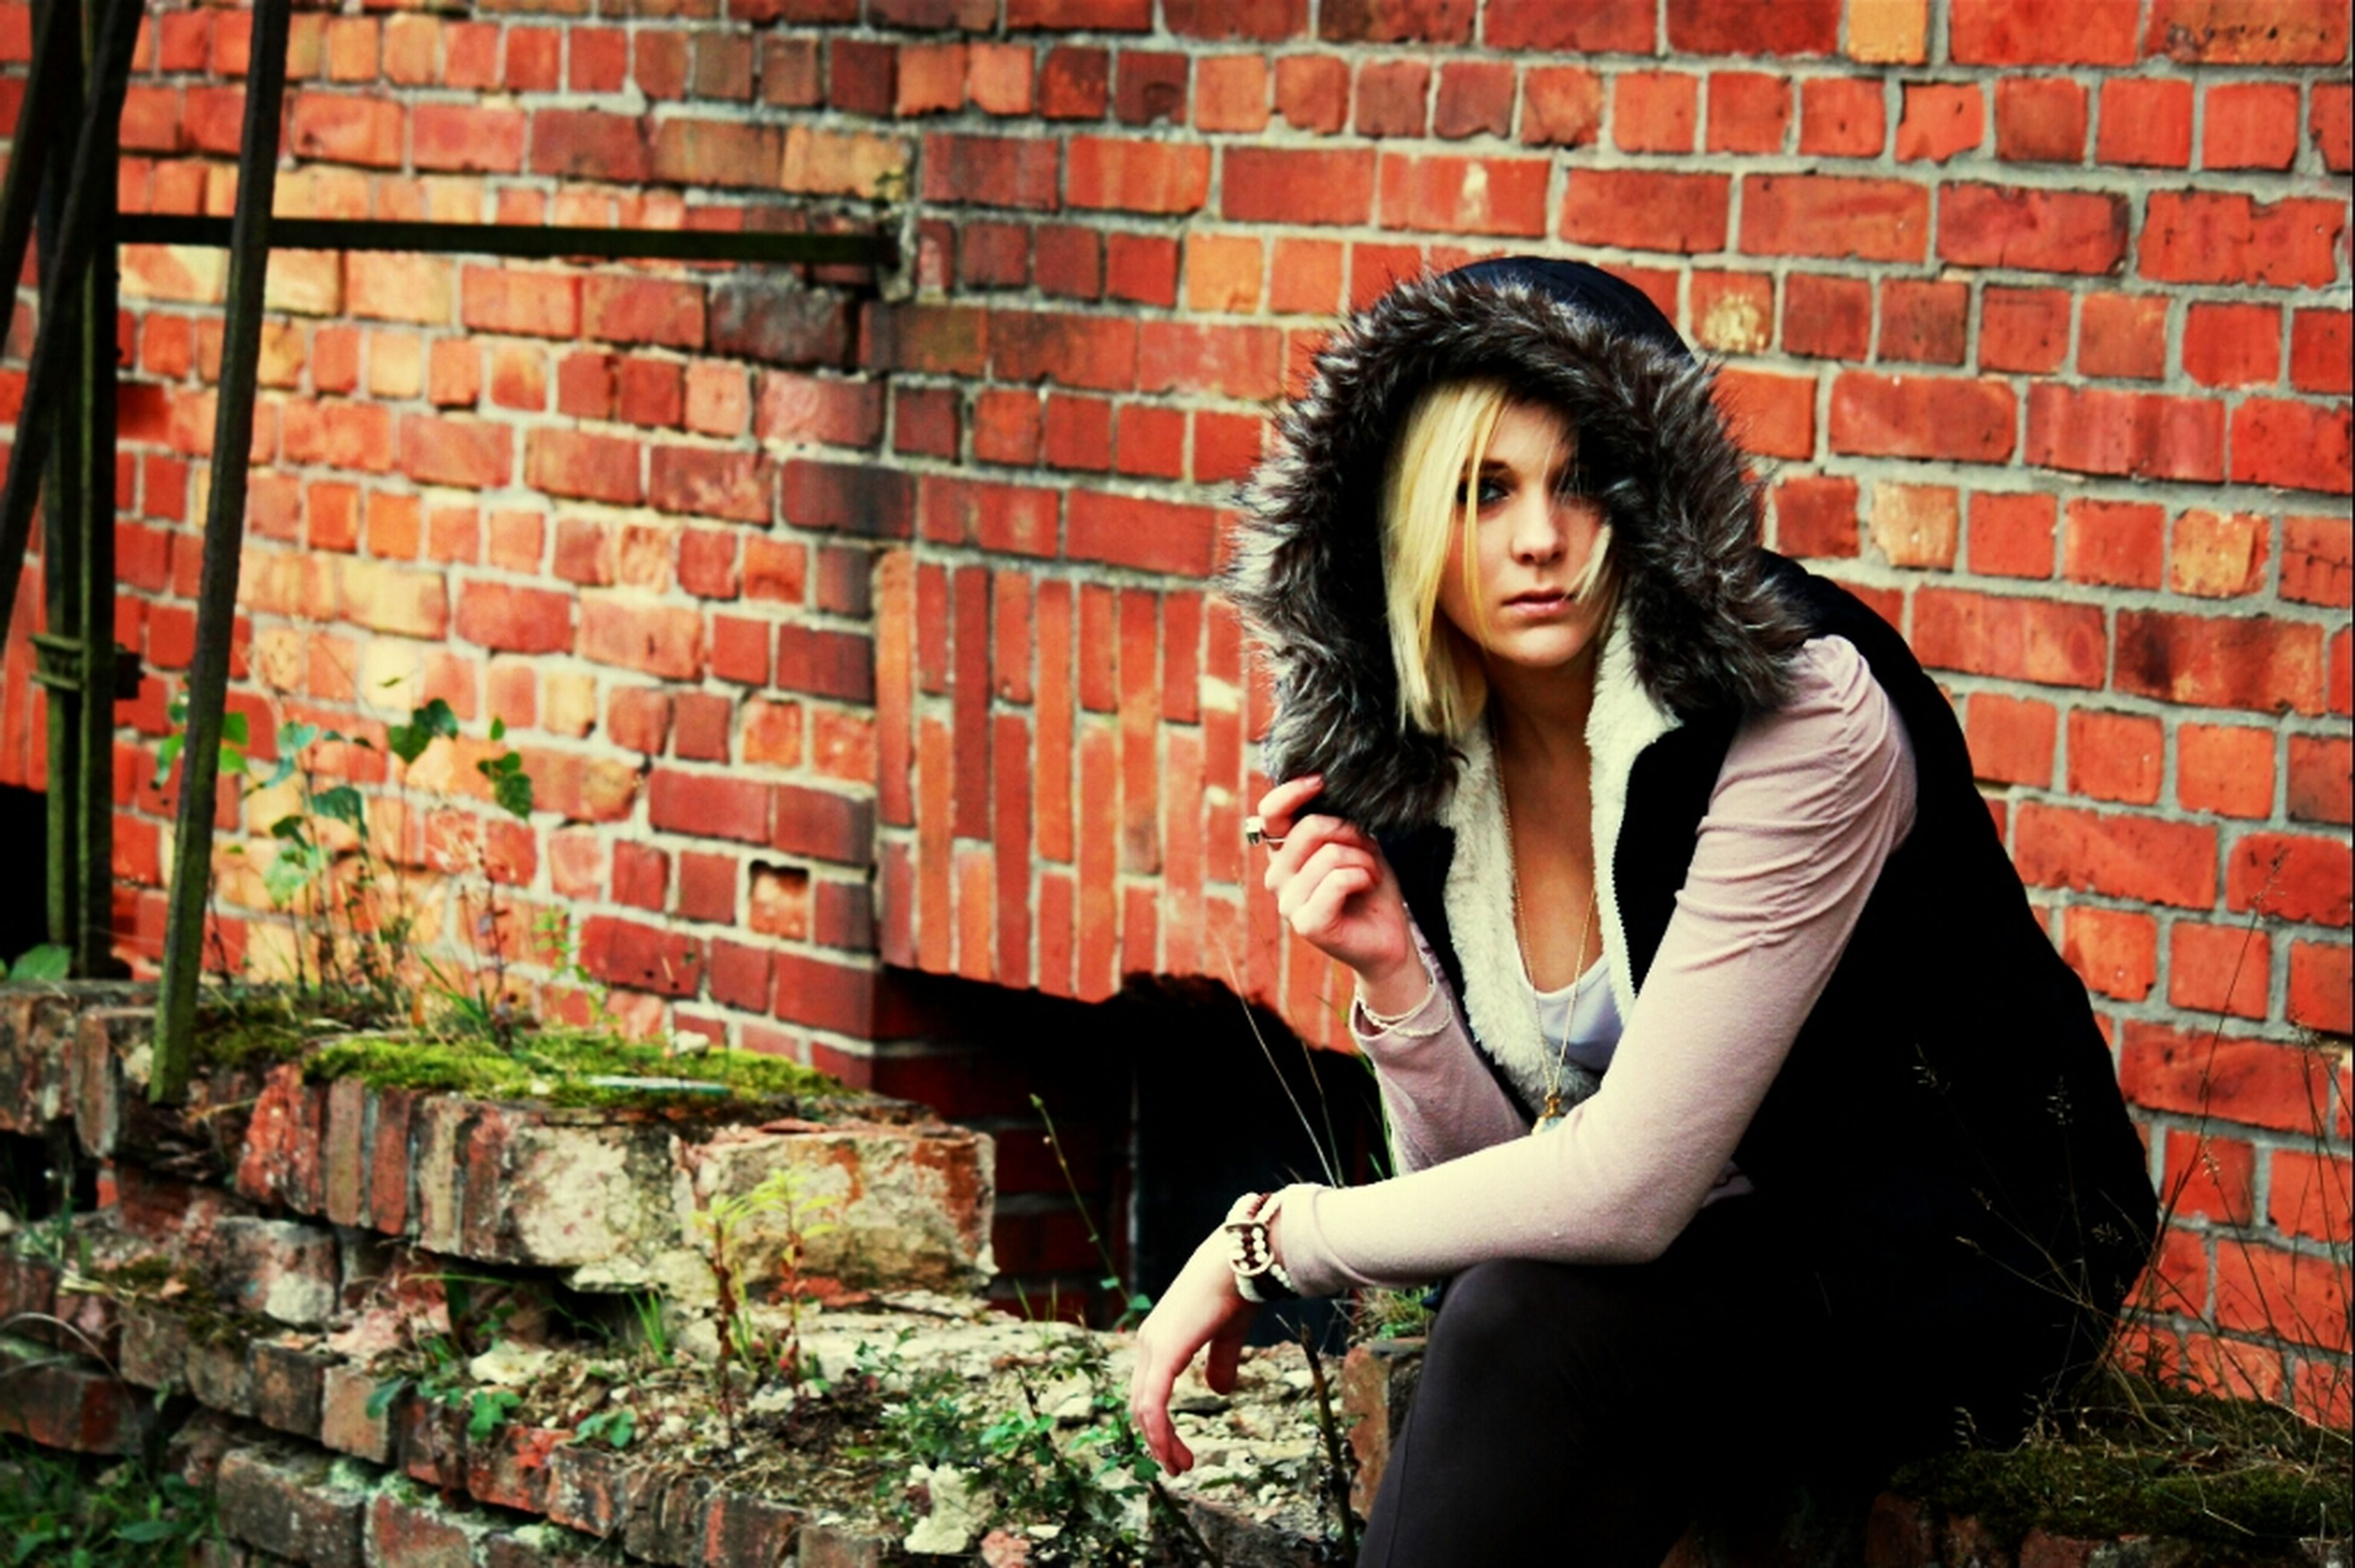 young adult, young women, brick wall, looking at camera, portrait, person, lifestyles, front view, casual clothing, standing, wall - building feature, long hair, leisure activity, smiling, architecture, built structure, three quarter length